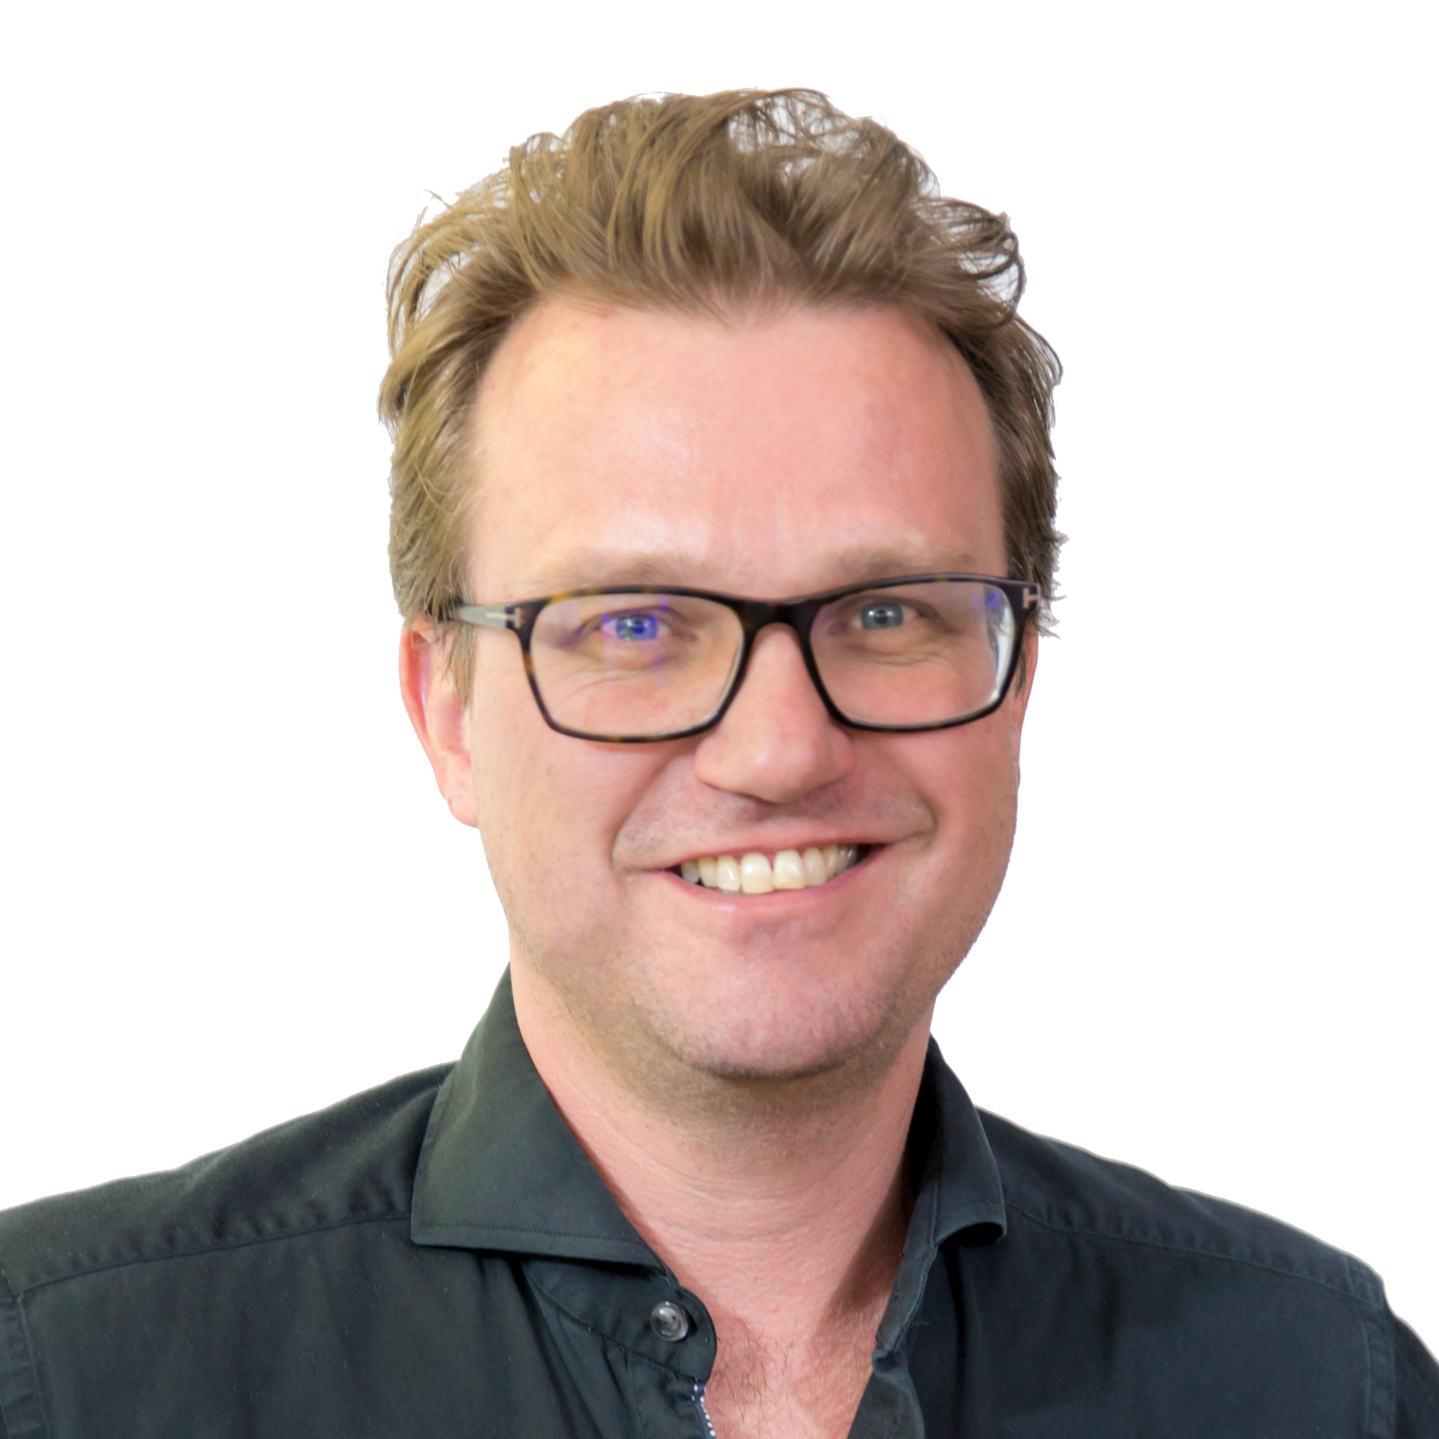 Tom Marsden, CEO of Saberr